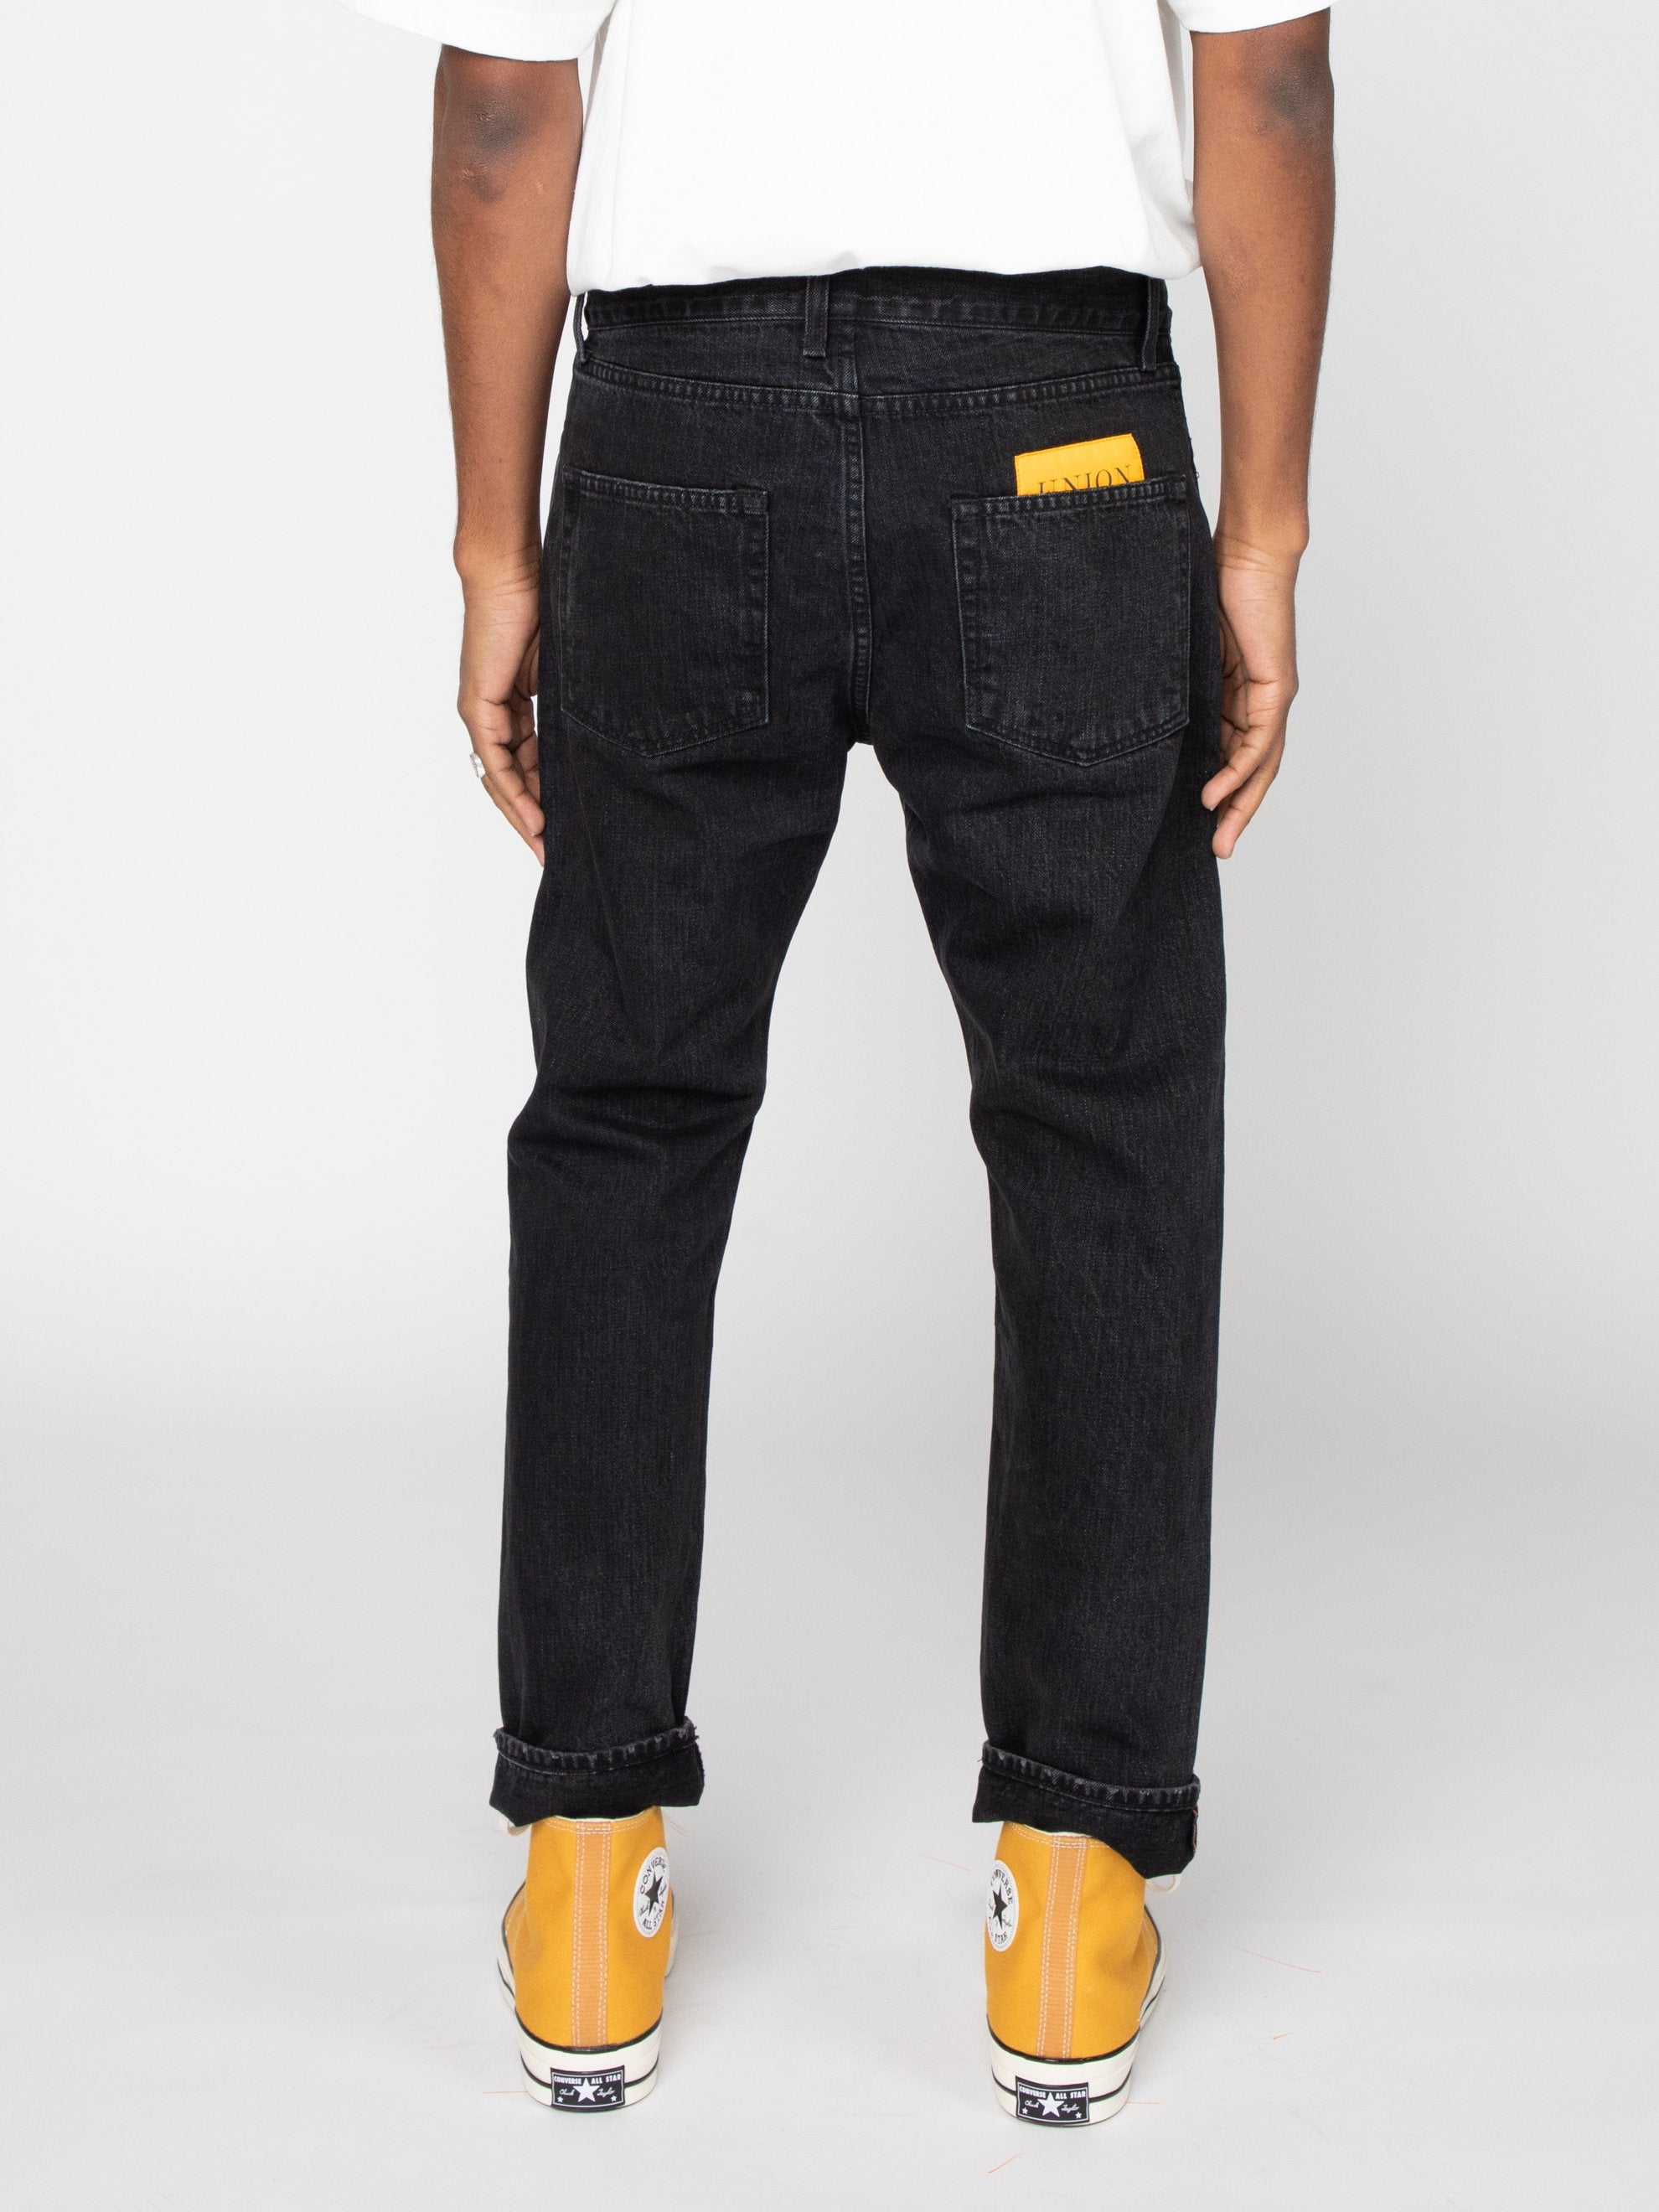 Union Denim